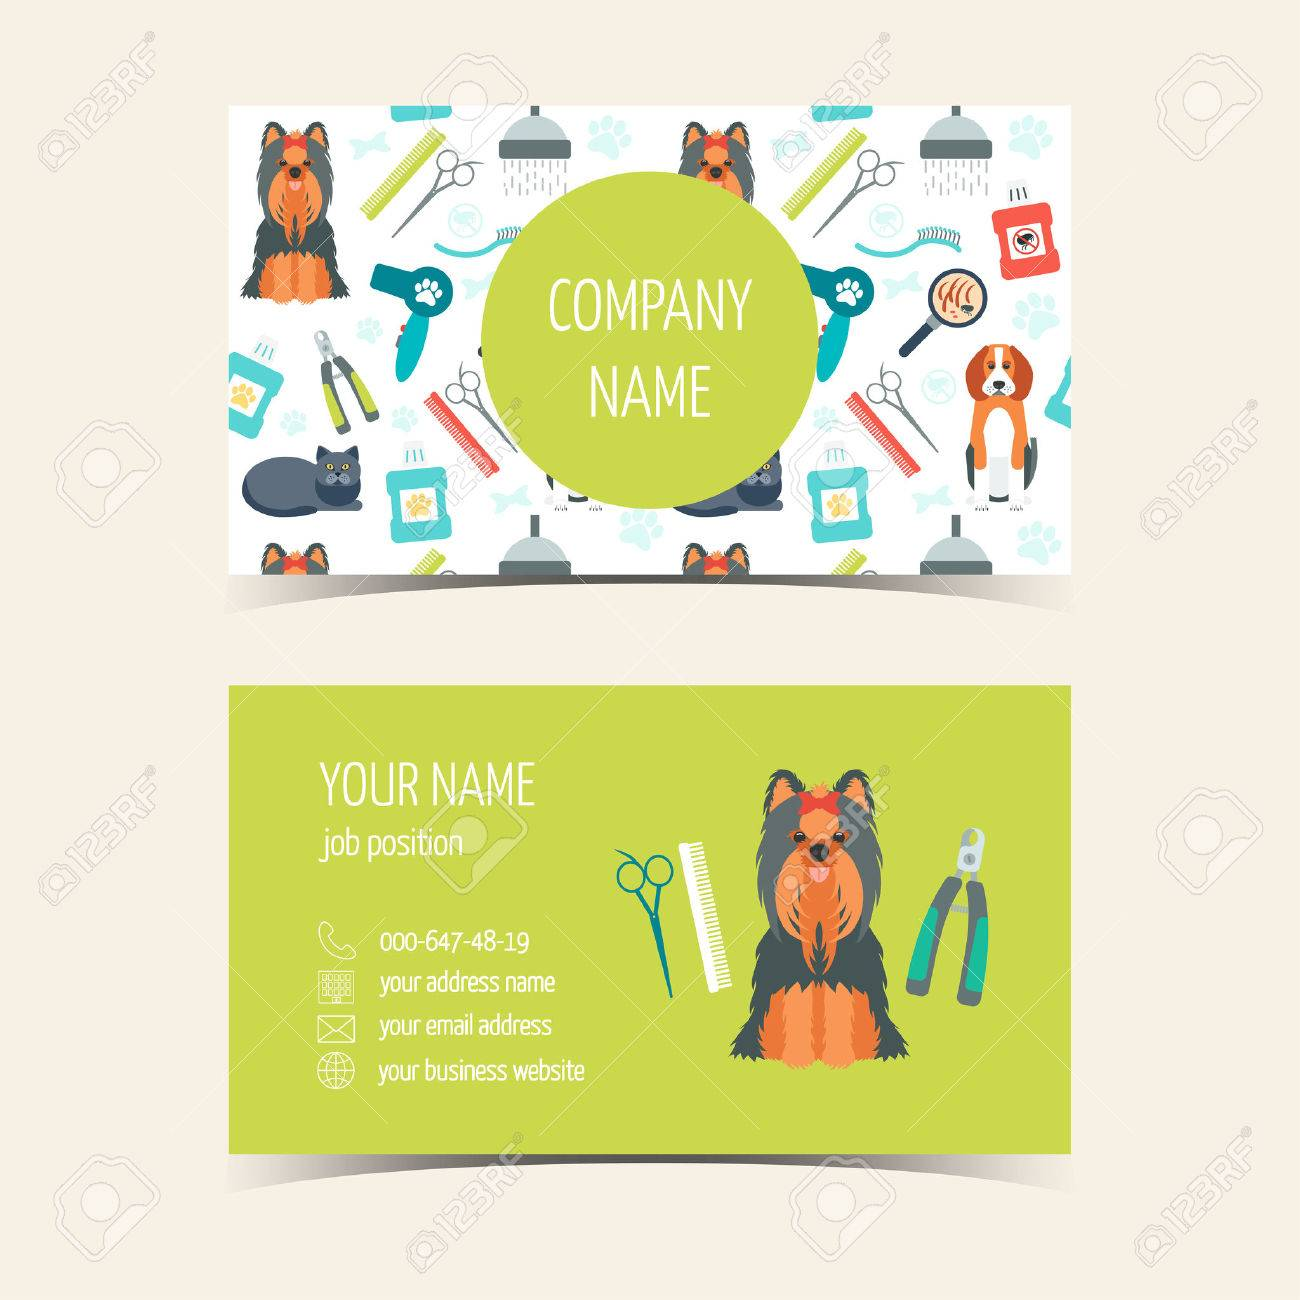 Free business card clip art images choice image free business cards paw print business cards image collections free business cards grooming business cards images free business cards magicingreecefo Choice Image